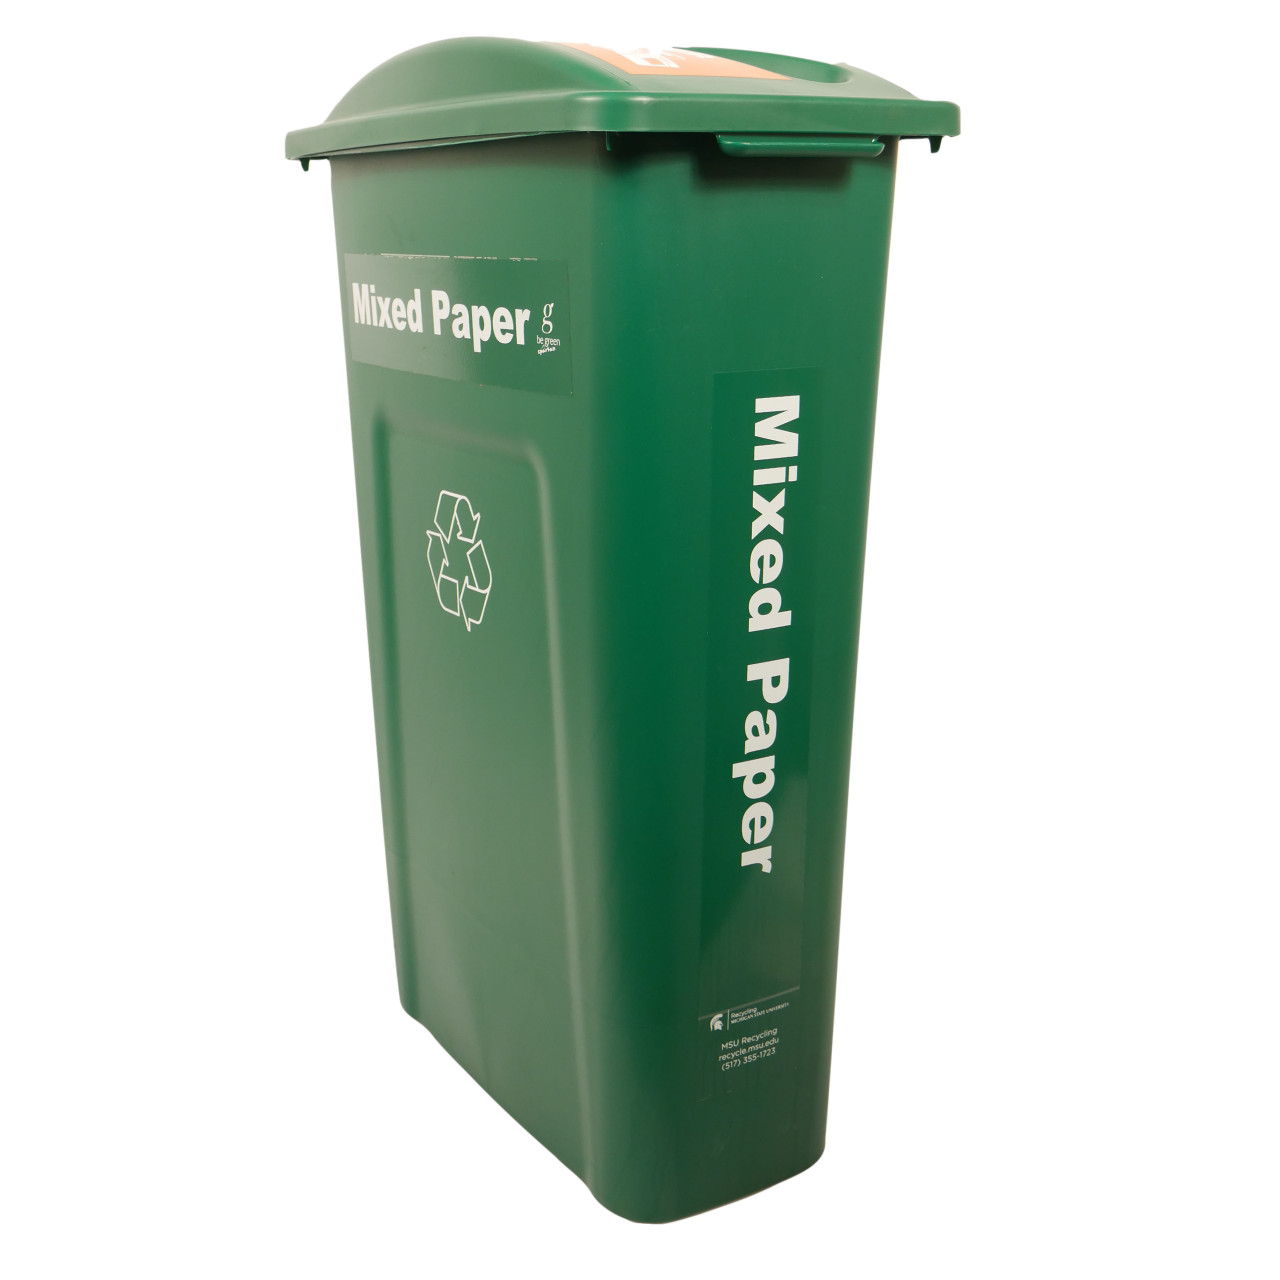 Hallway Recycling Bin for Mixed Paper - angle view